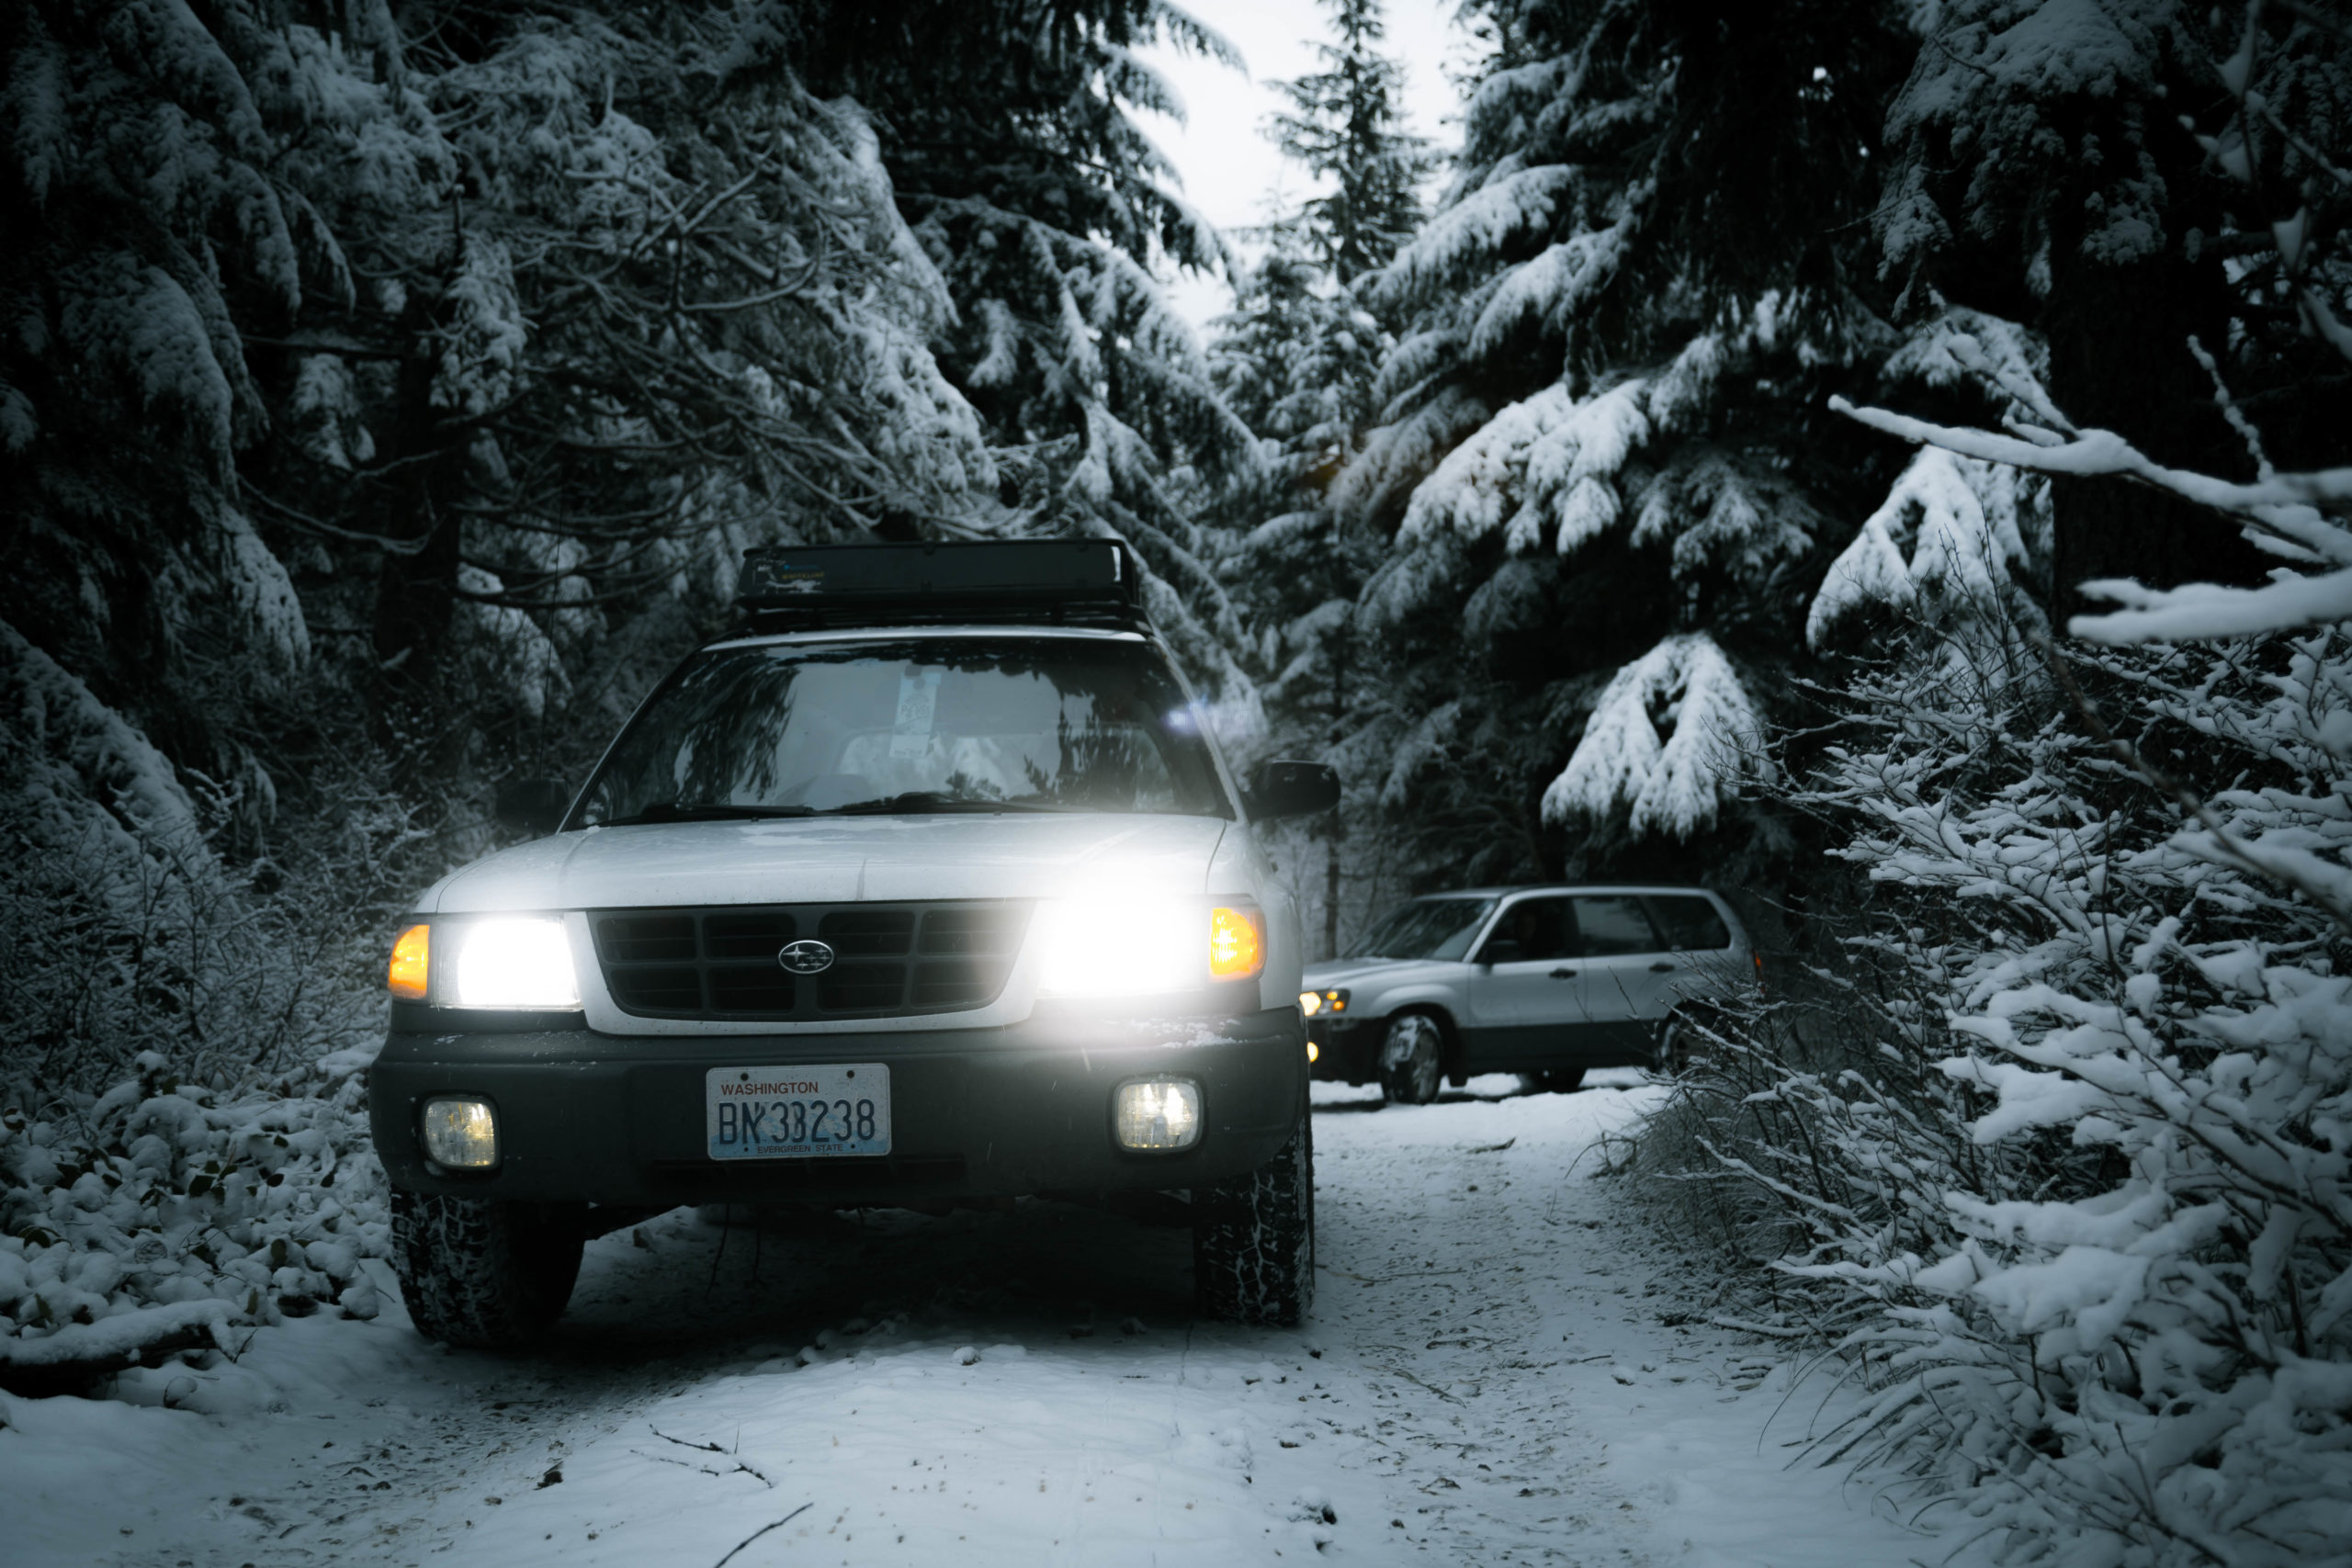 subaru forester in the snow with bright headlights, toyo open country all terrain tires and a lift kit